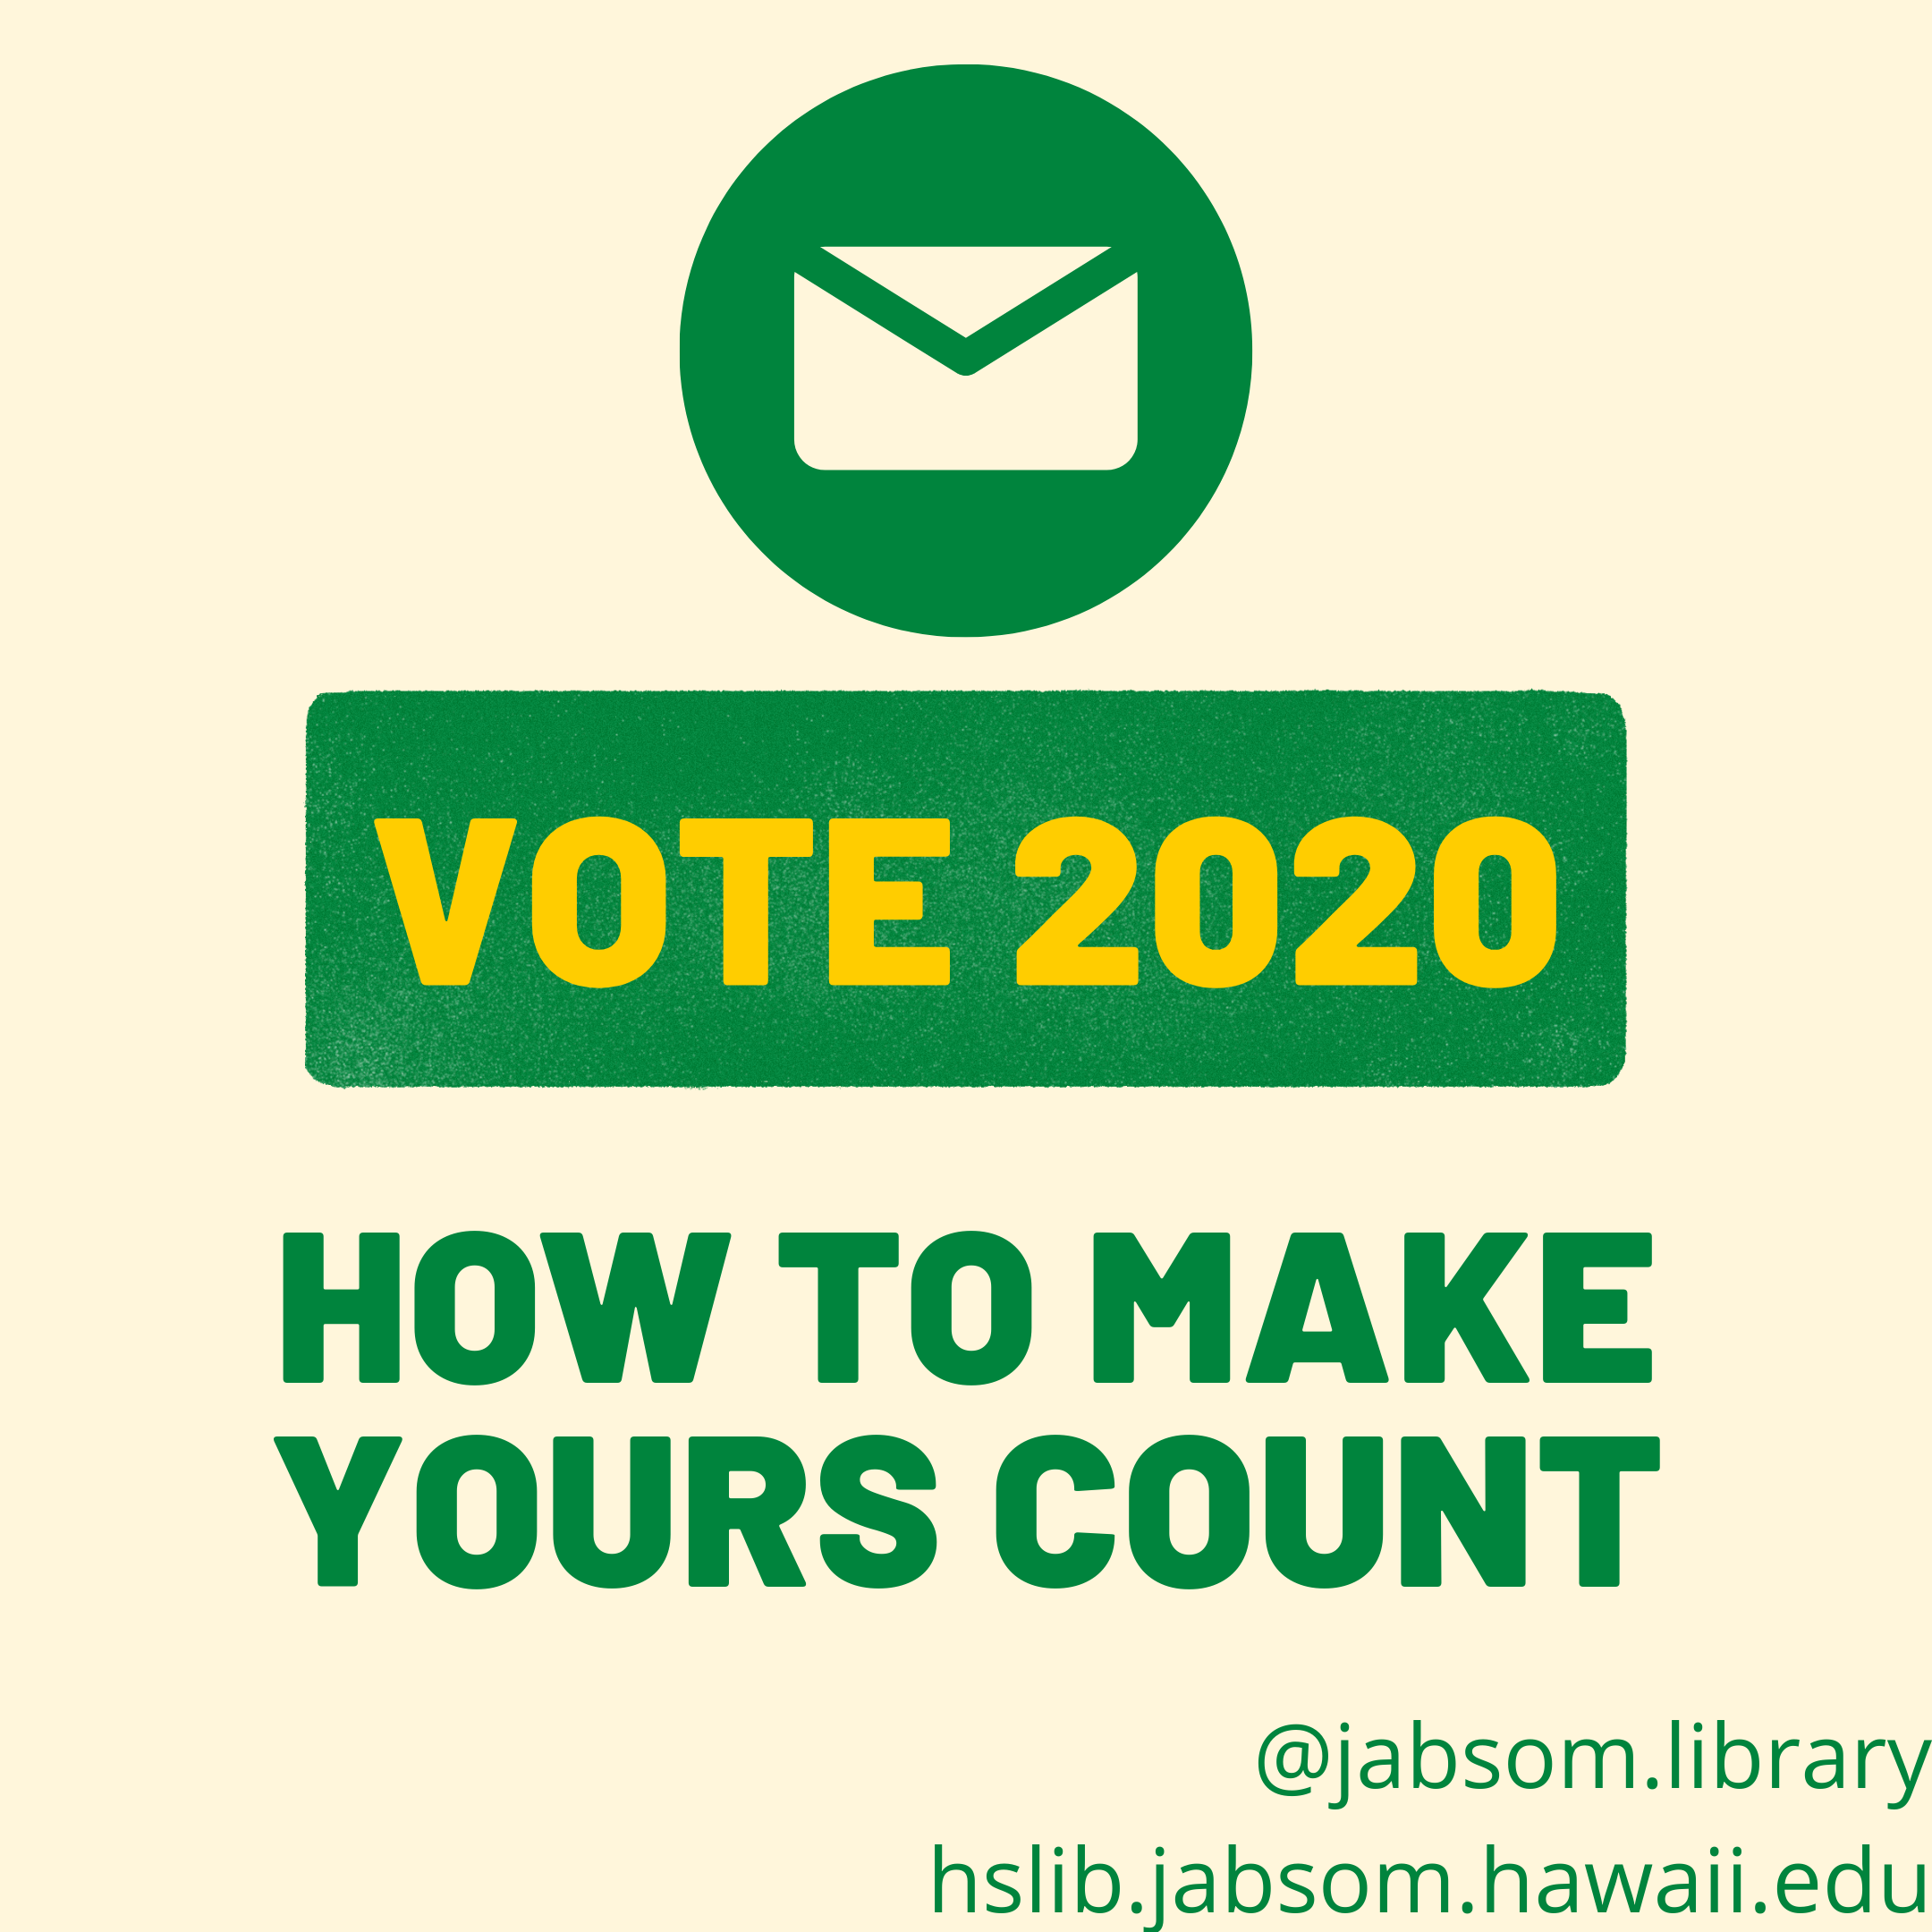 VOTE 2020: How to make yours count